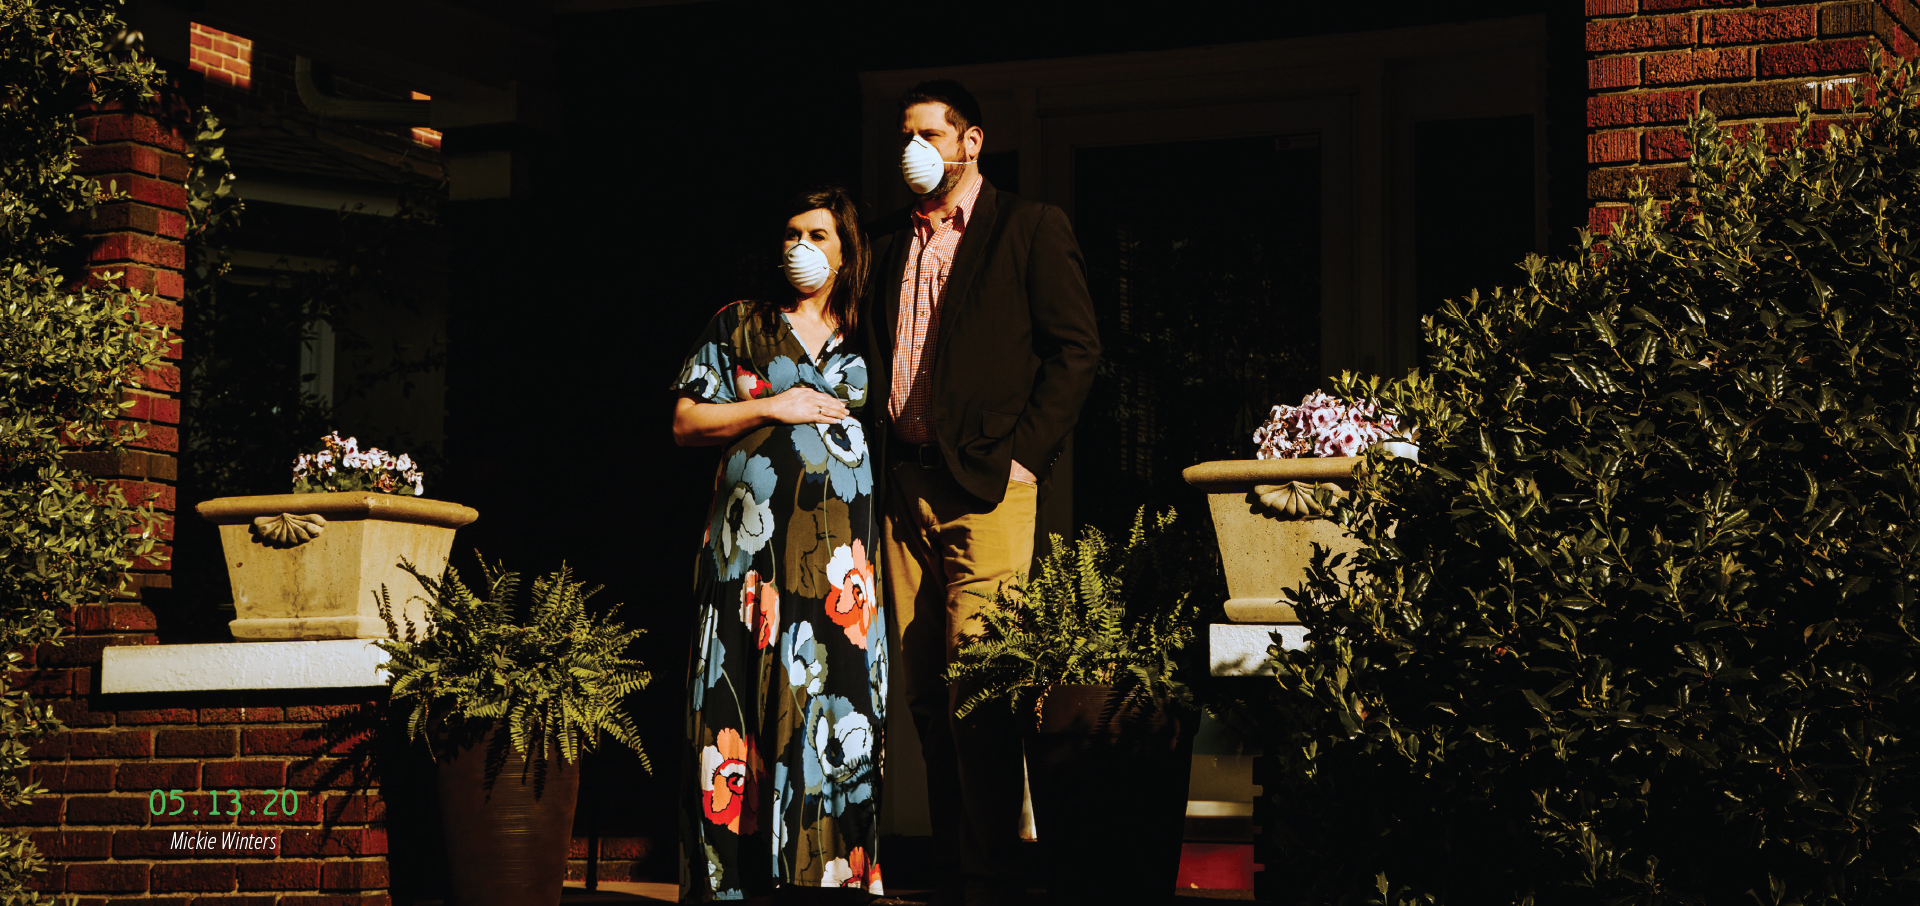 A pregnant couple standing on their porch wearing masks. 05.13.20, by Mickie Winters